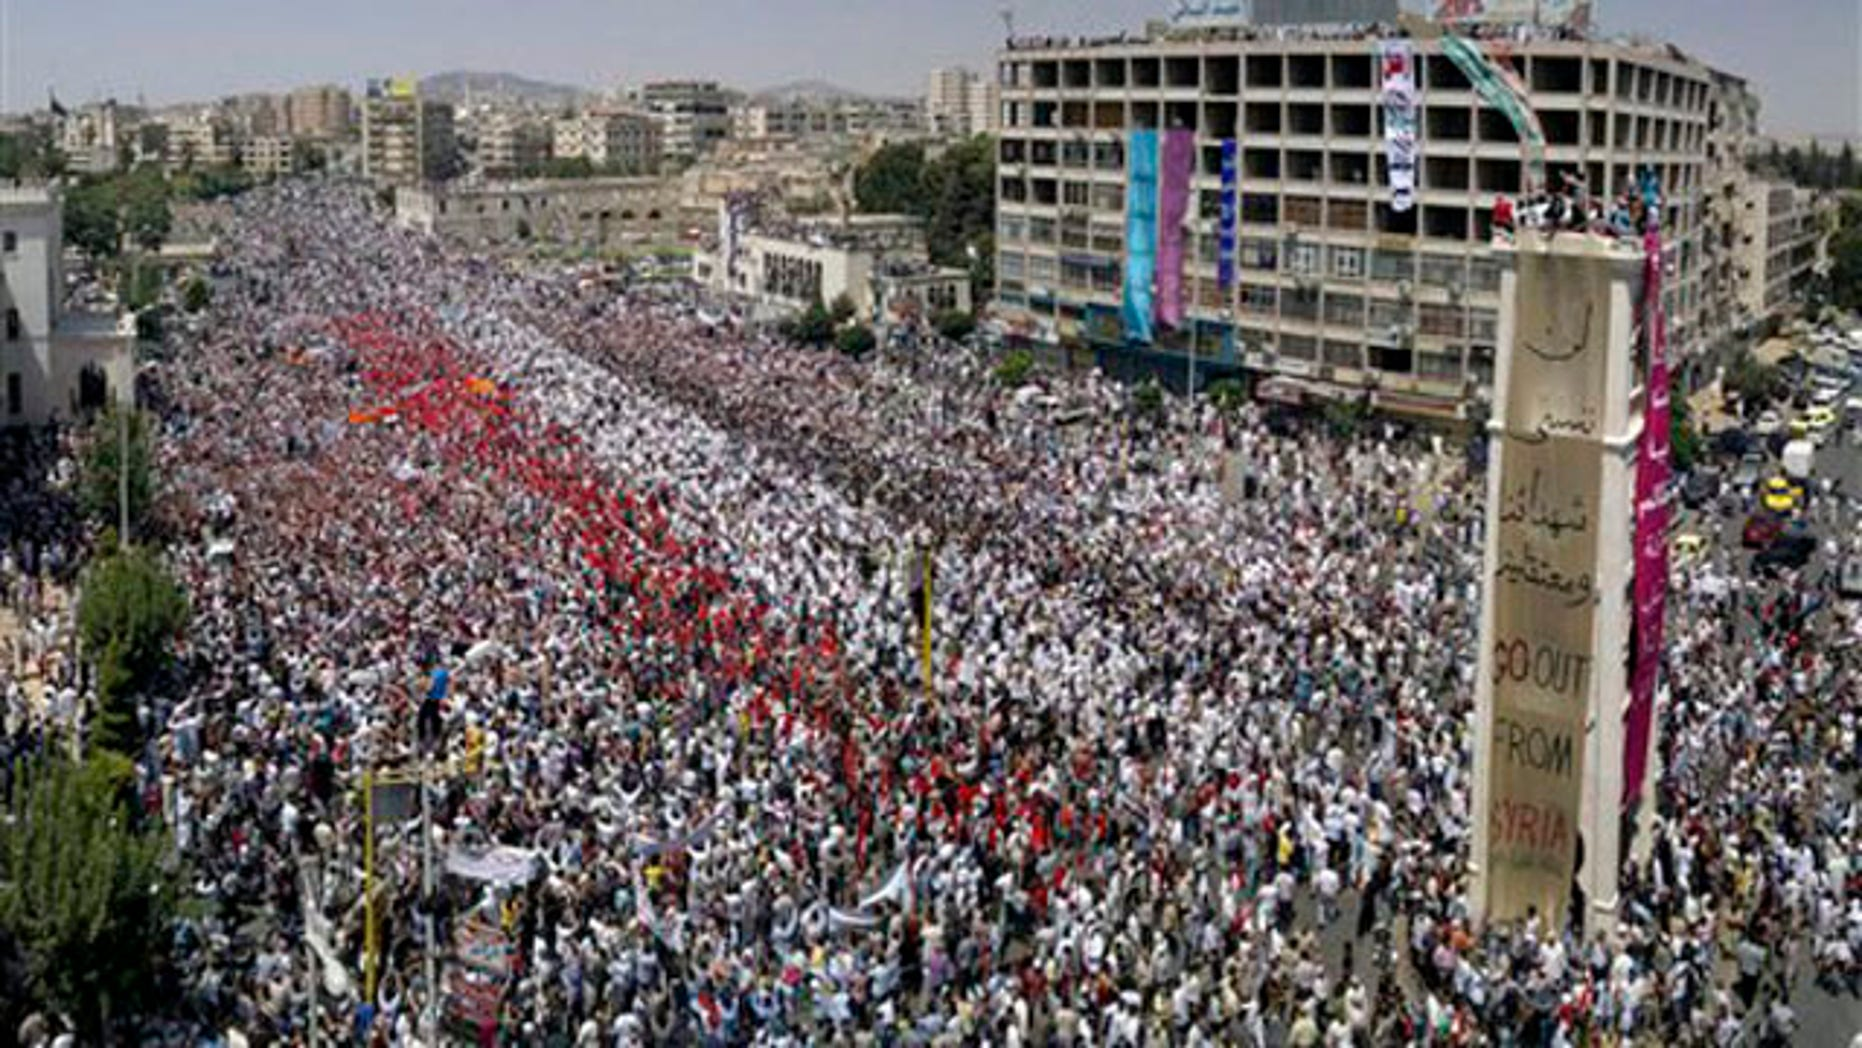 A citizen journalism image made July 22 on a mobile phone and provided by Shaam News Network shows Syrian anti-regime protesters gather during a rally in al-Assy square in the western city of Hama, Syria.